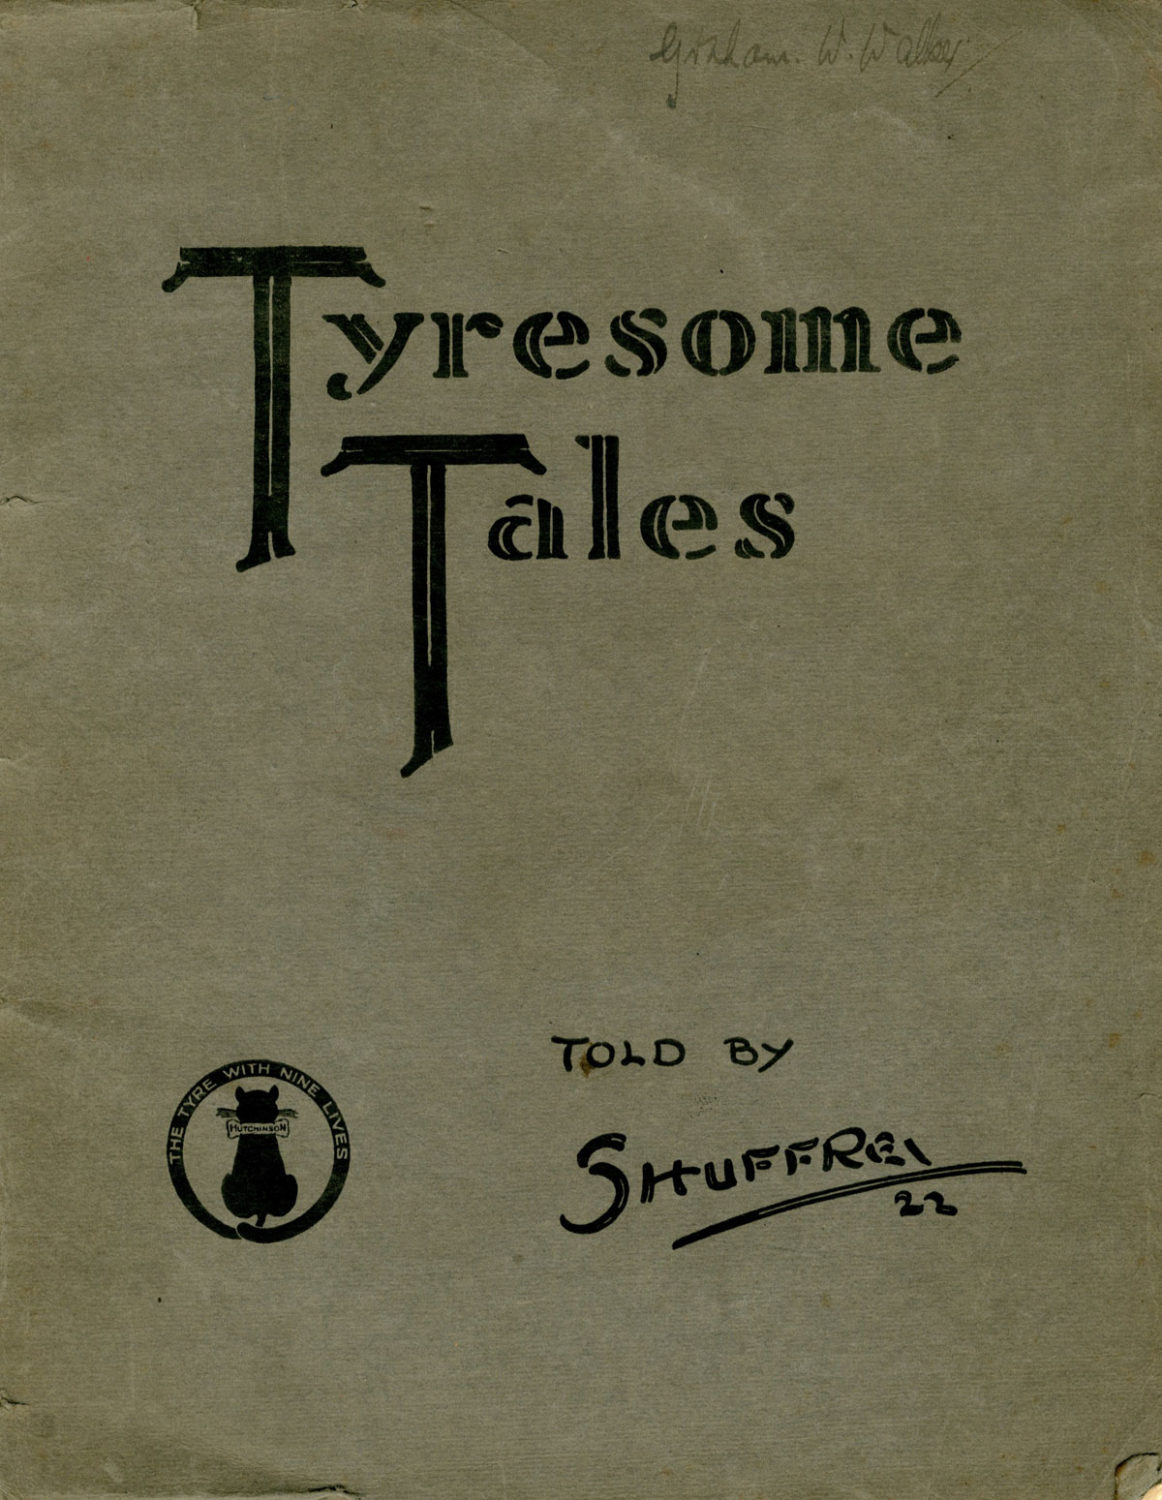 Tyresome tales front cover